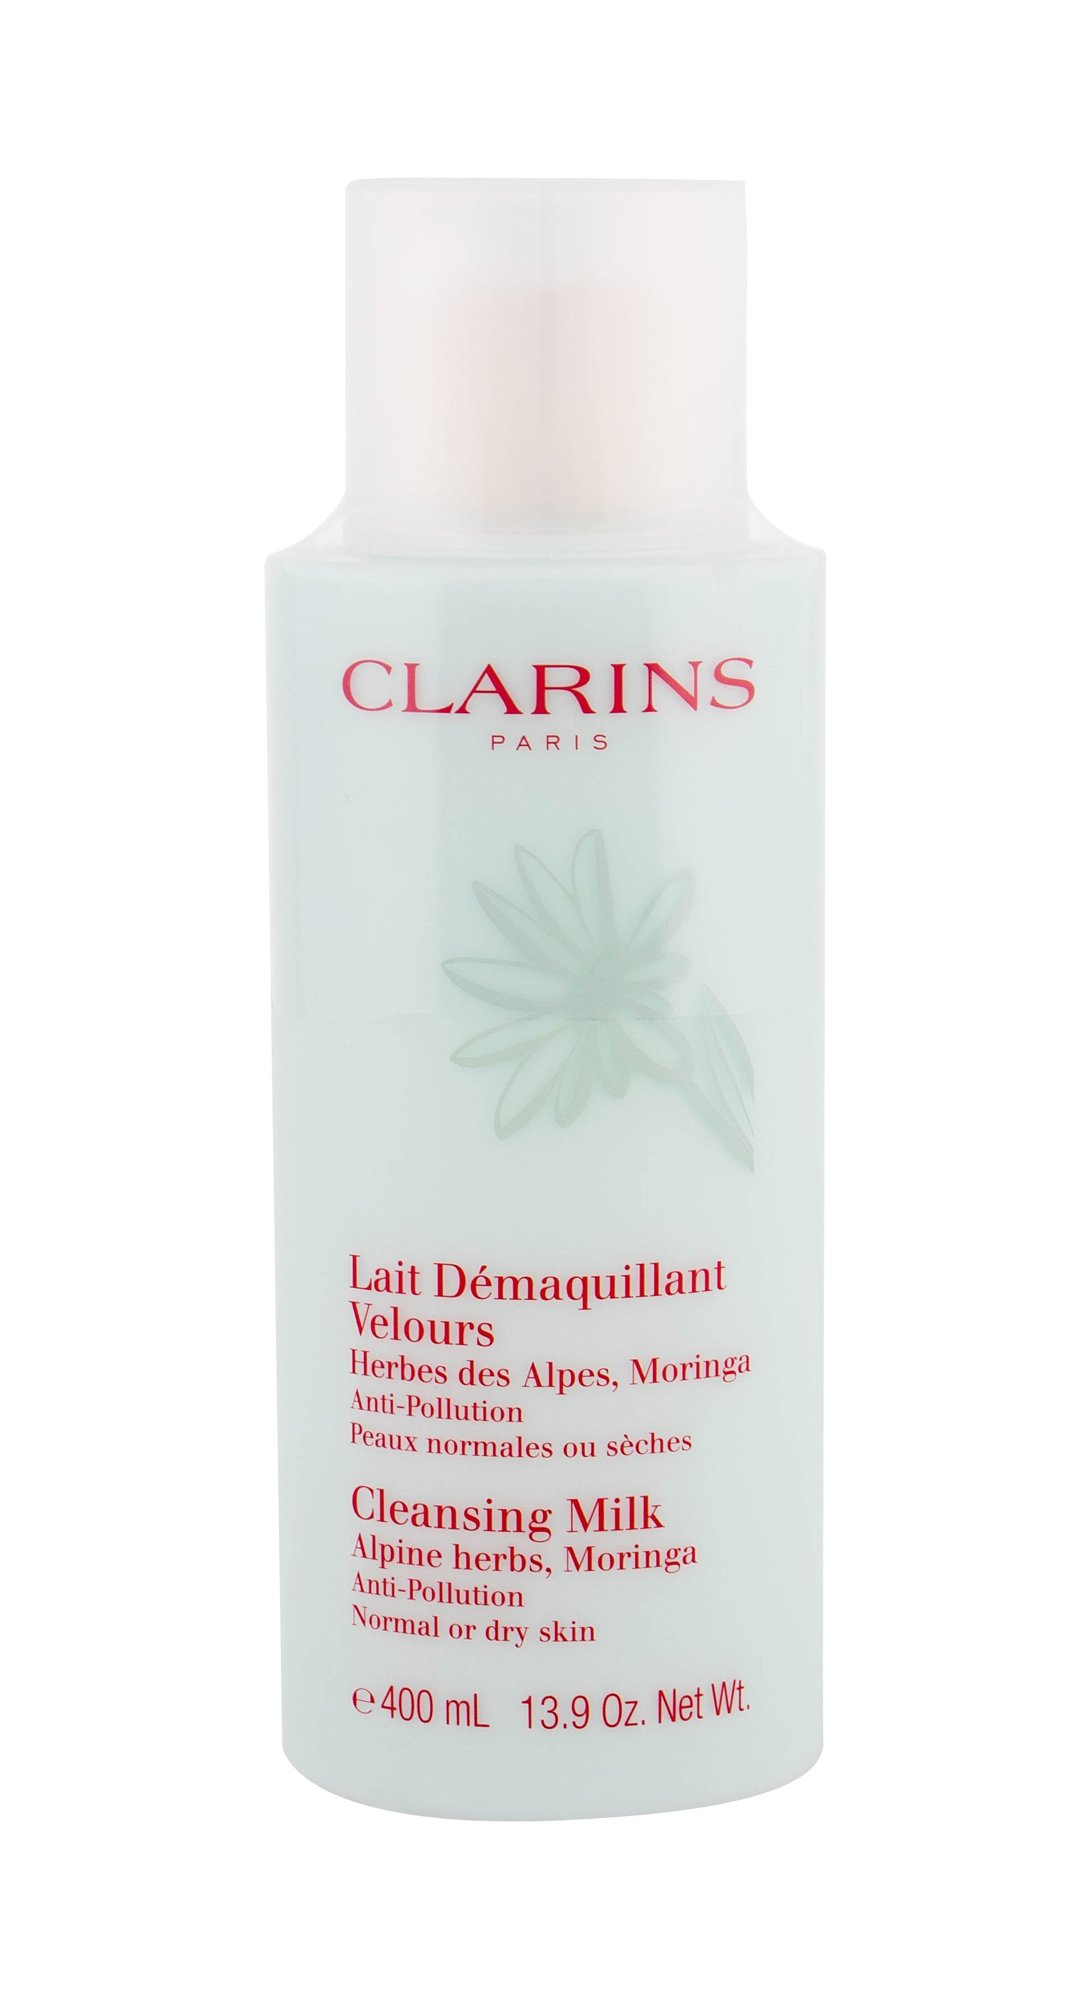 Clarins Anti-Pollution Cleansing Milk With Alpine Herbs Cleansing Milk 400ml